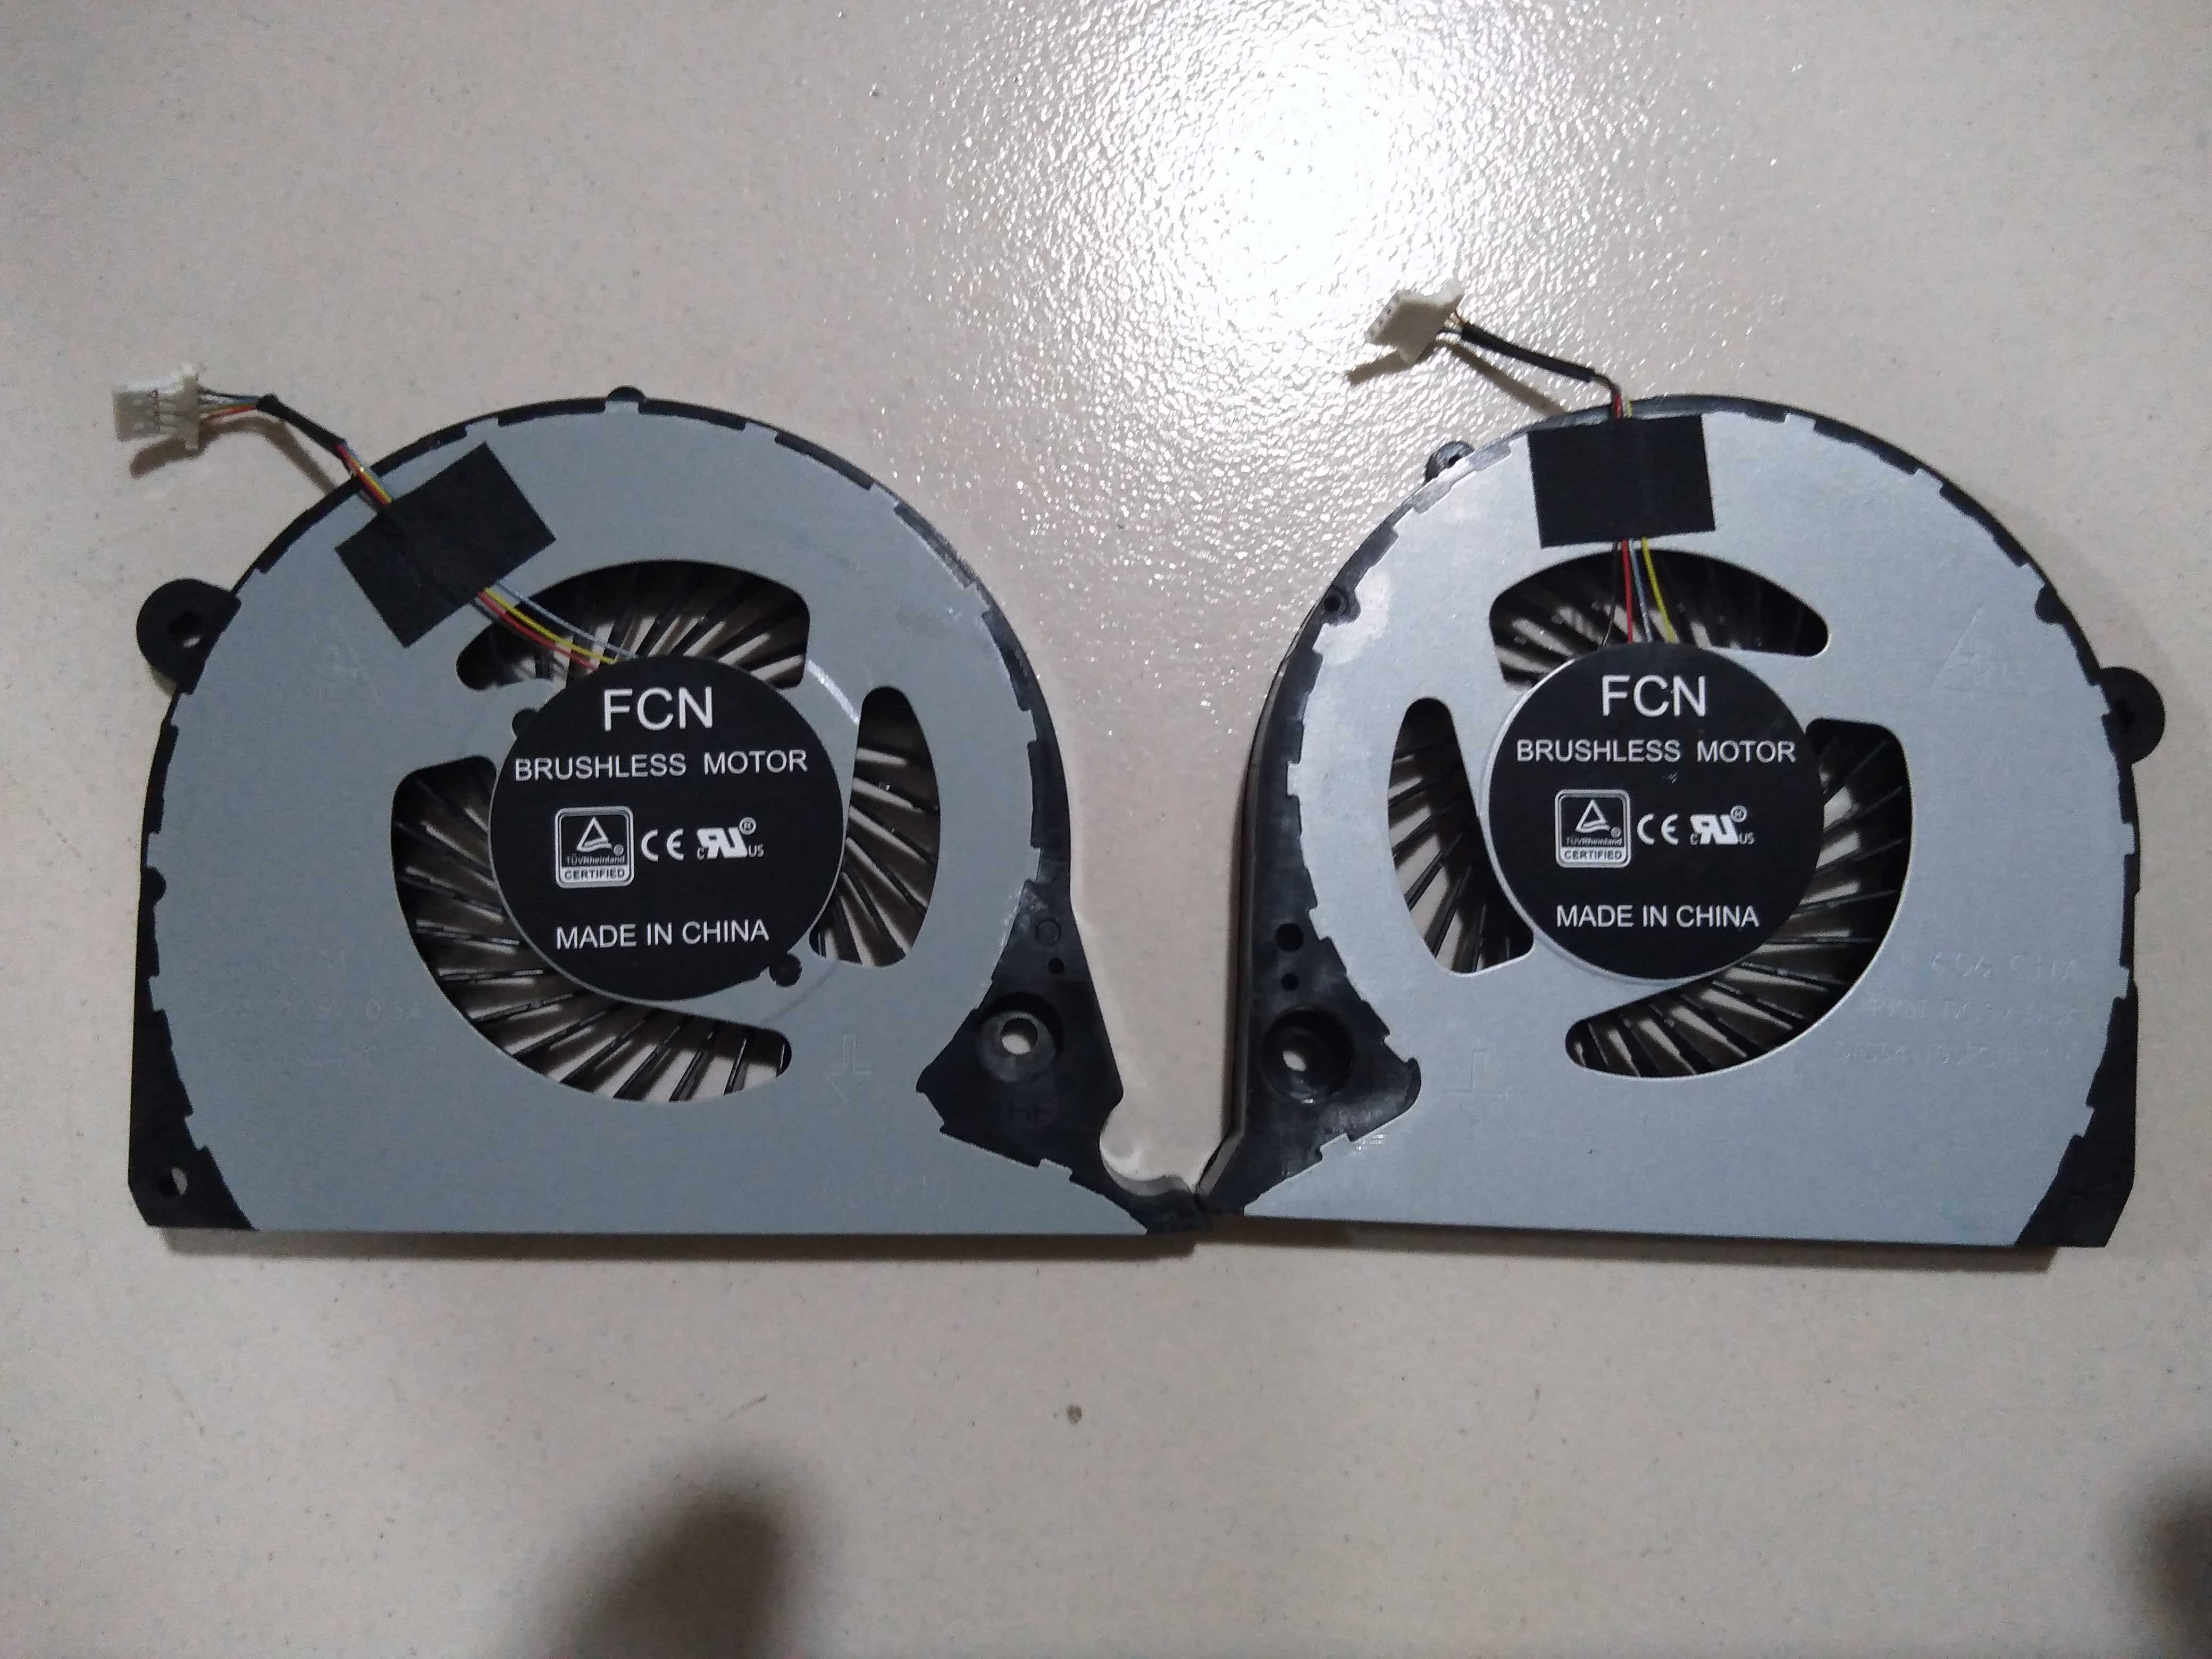 New CPU GPU Cooler Fan For DELL Inspiron 15-7588 15-7577 G7-7588 G7-7577 P72F G7-7590 P82F G5-5587 15 G7 7577 7588 Radiator